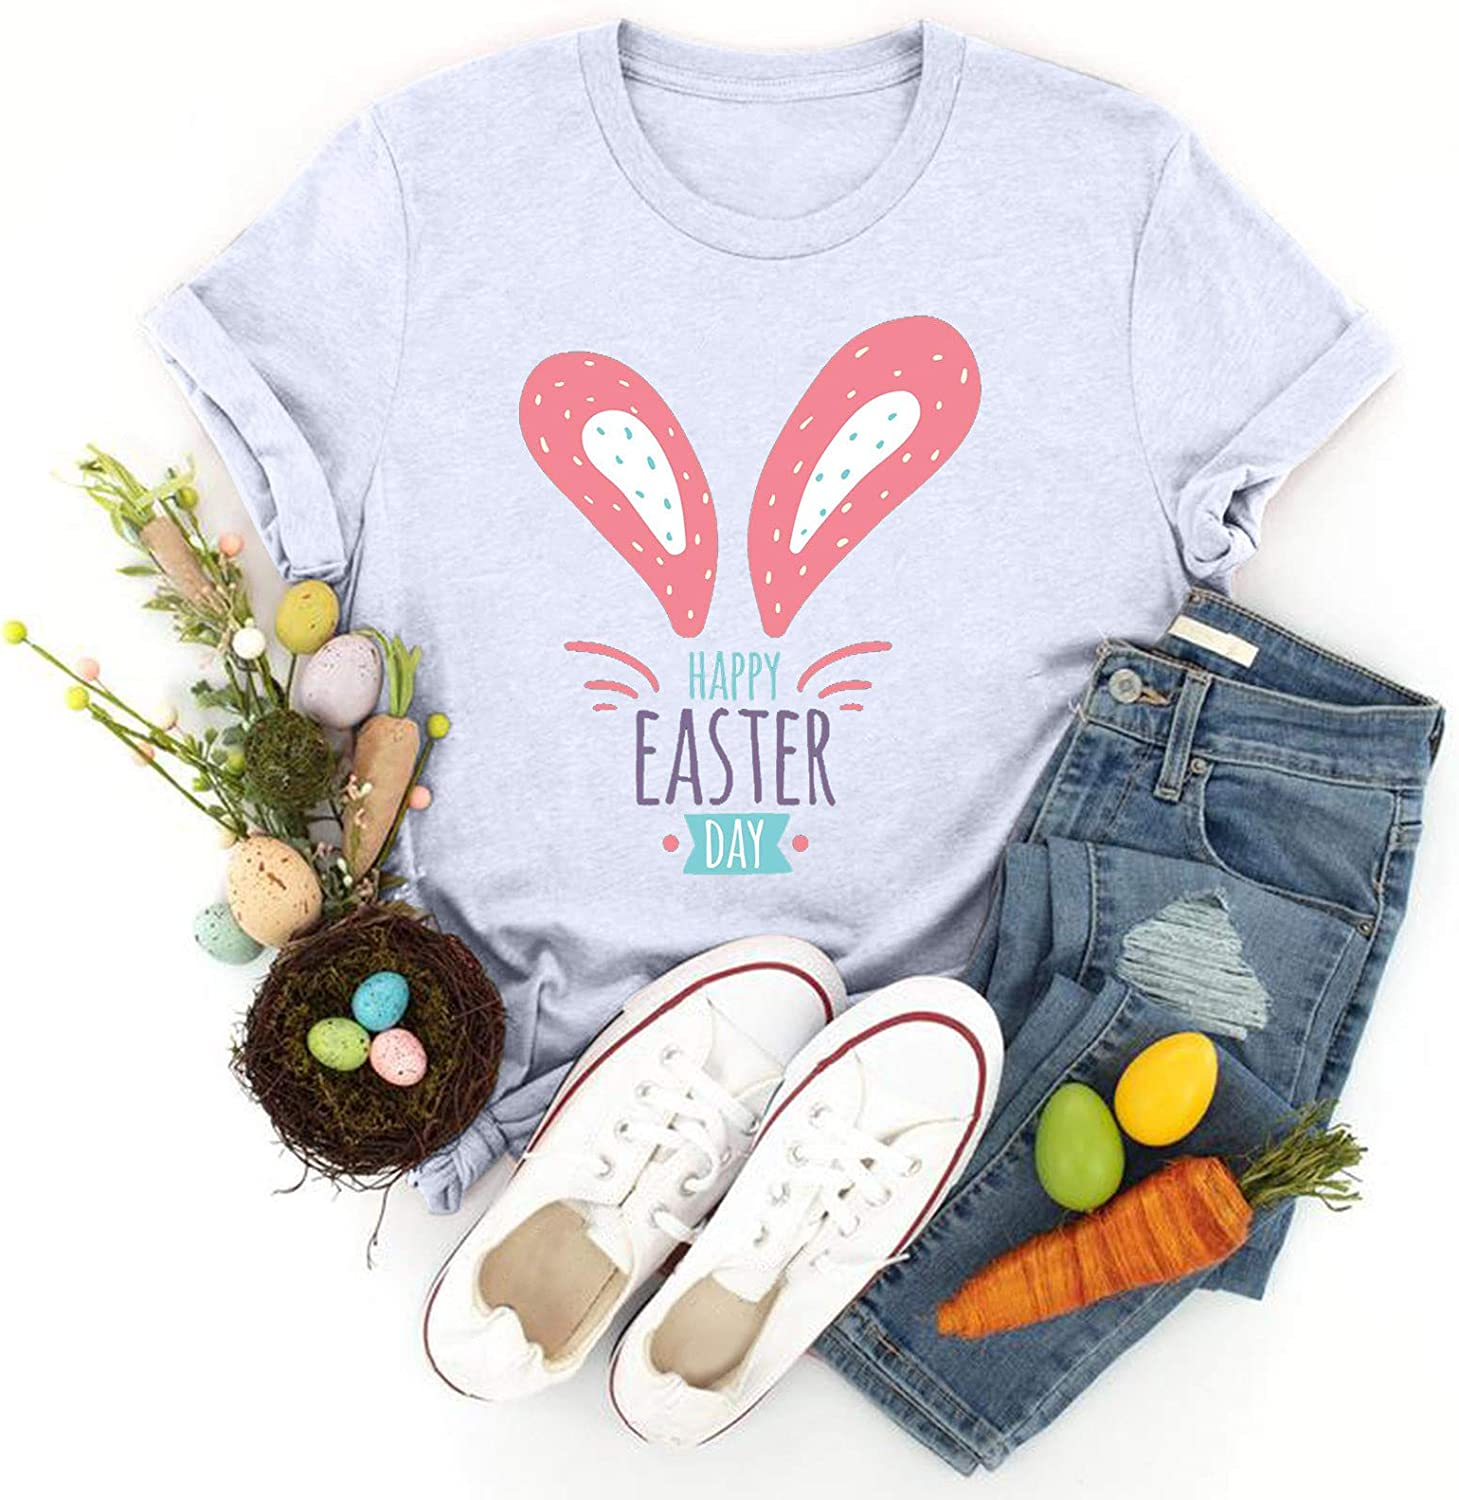 Shan-S Womens Easter trust T Shirt Sleeve Bunny Weekly update Adorable Printed Short